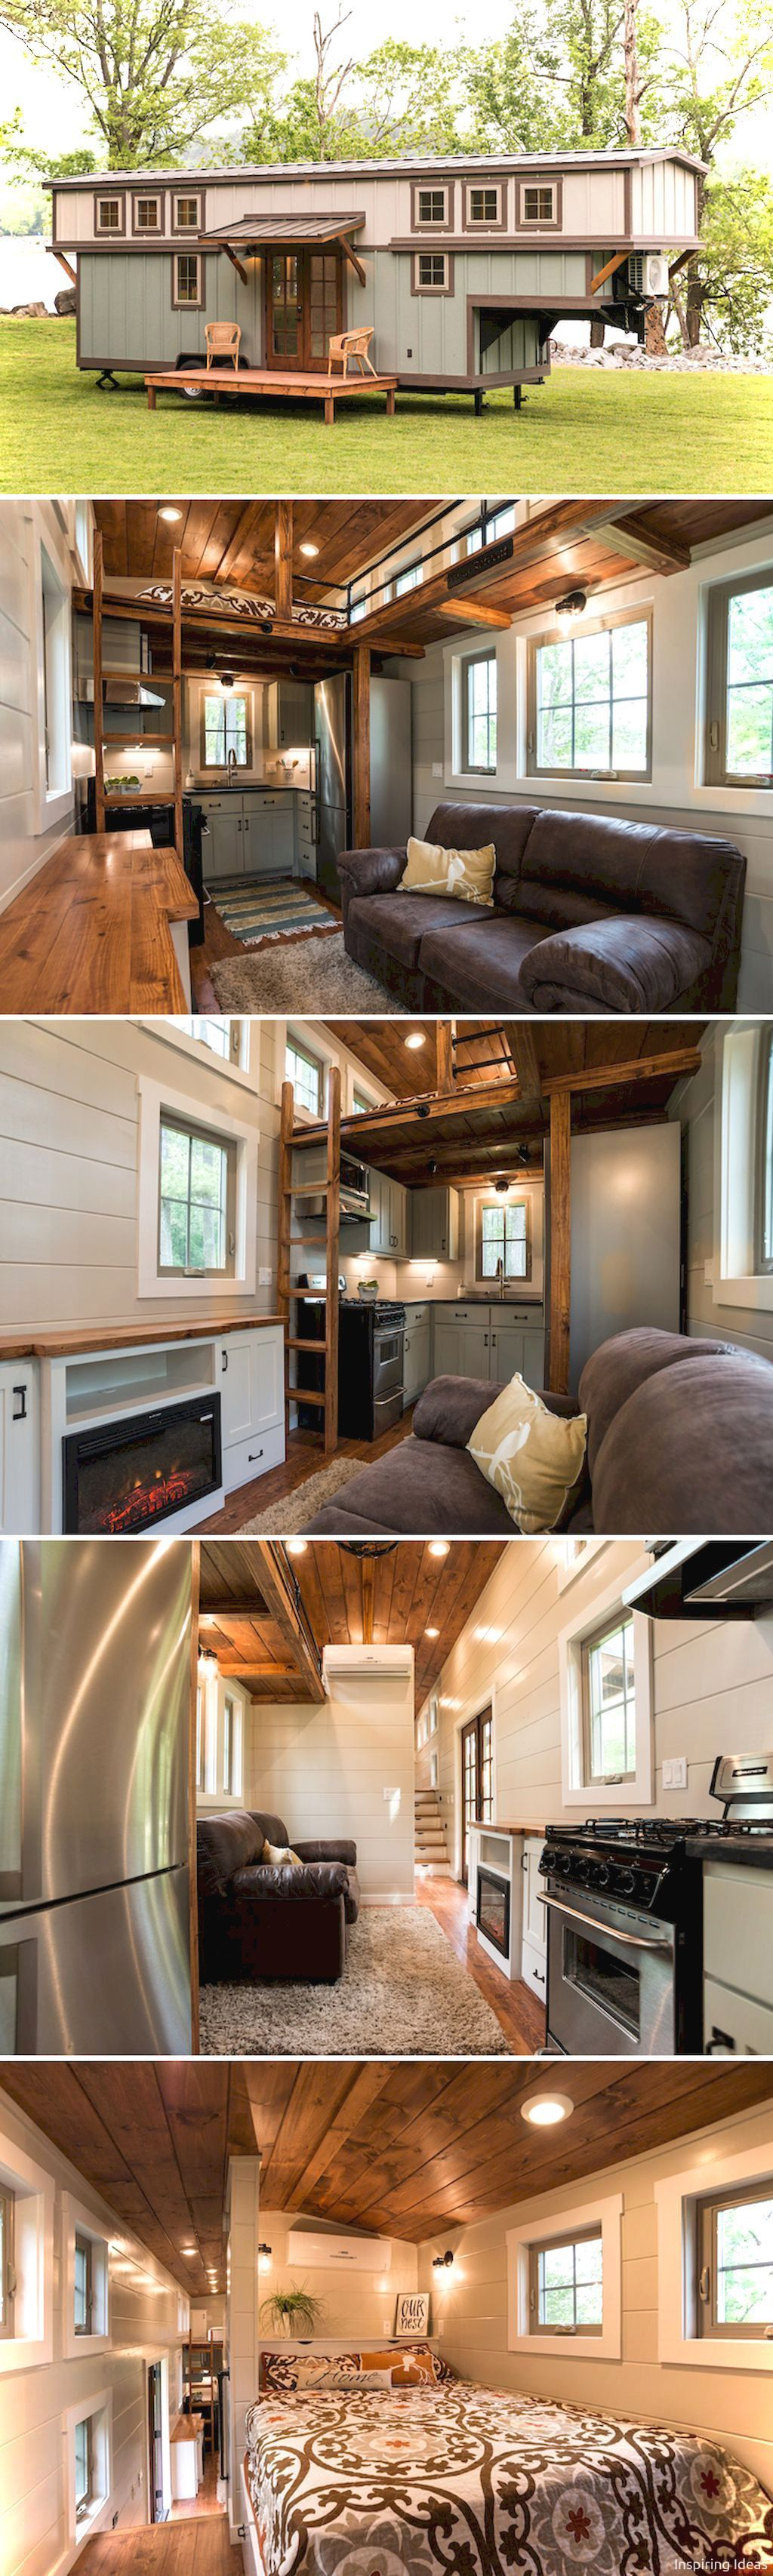 Incredible tiny house interior design ideas also ideas on wheels rh pinterest